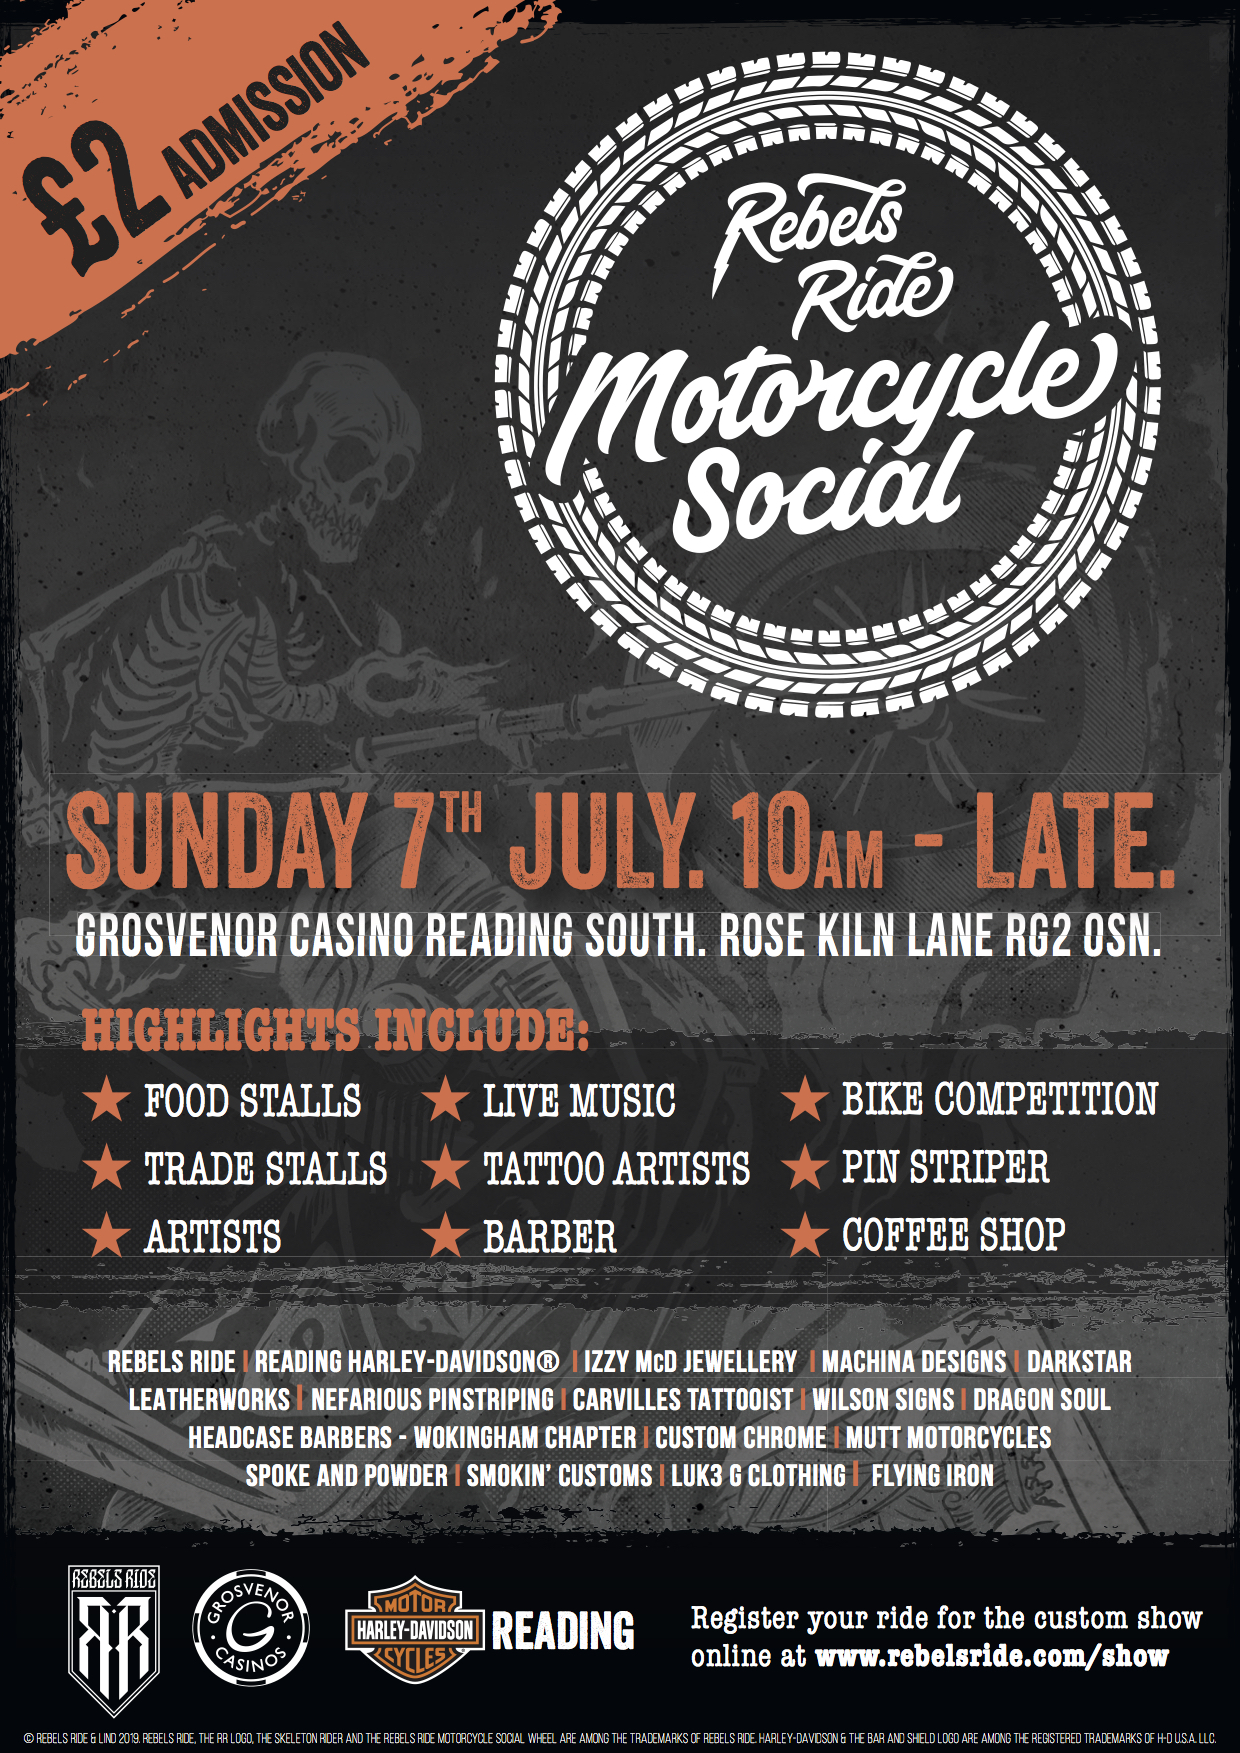 Motorcycle Social 2019 — REBELS RIDE